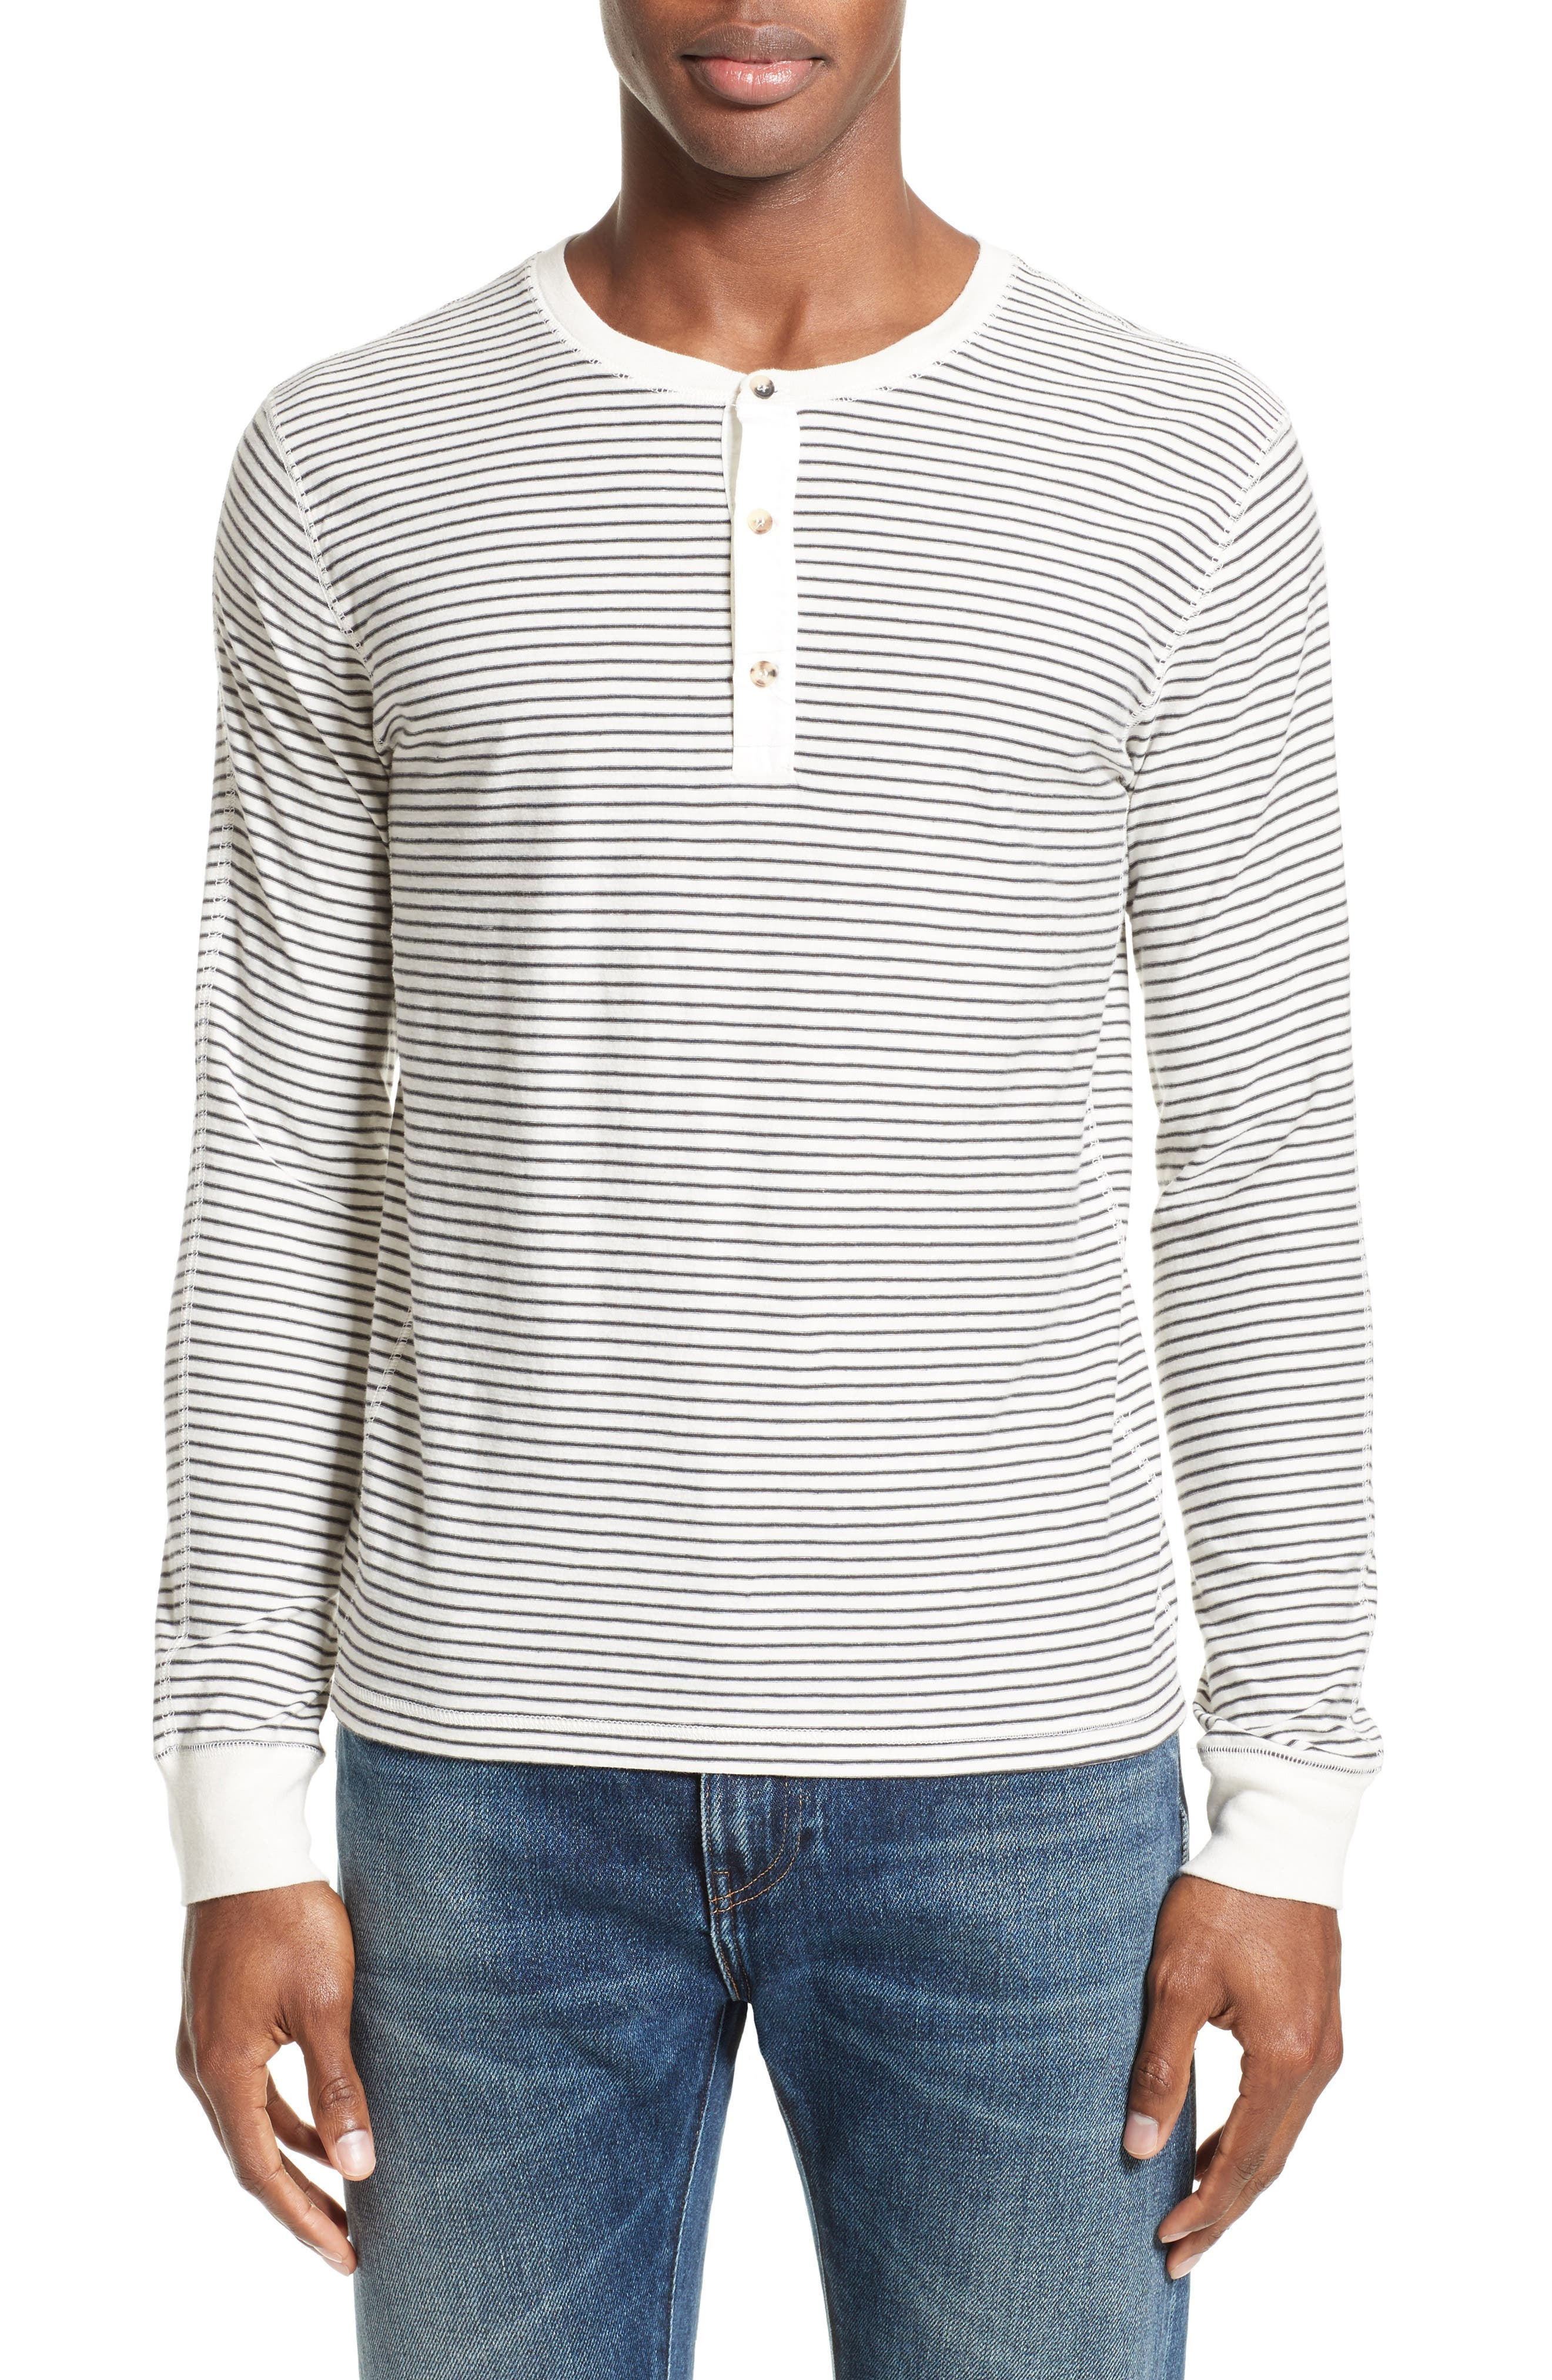 LEVIS<SUP>®</SUP> MADE & CRAFTED<SUP>™</SUP> Stripe Henley